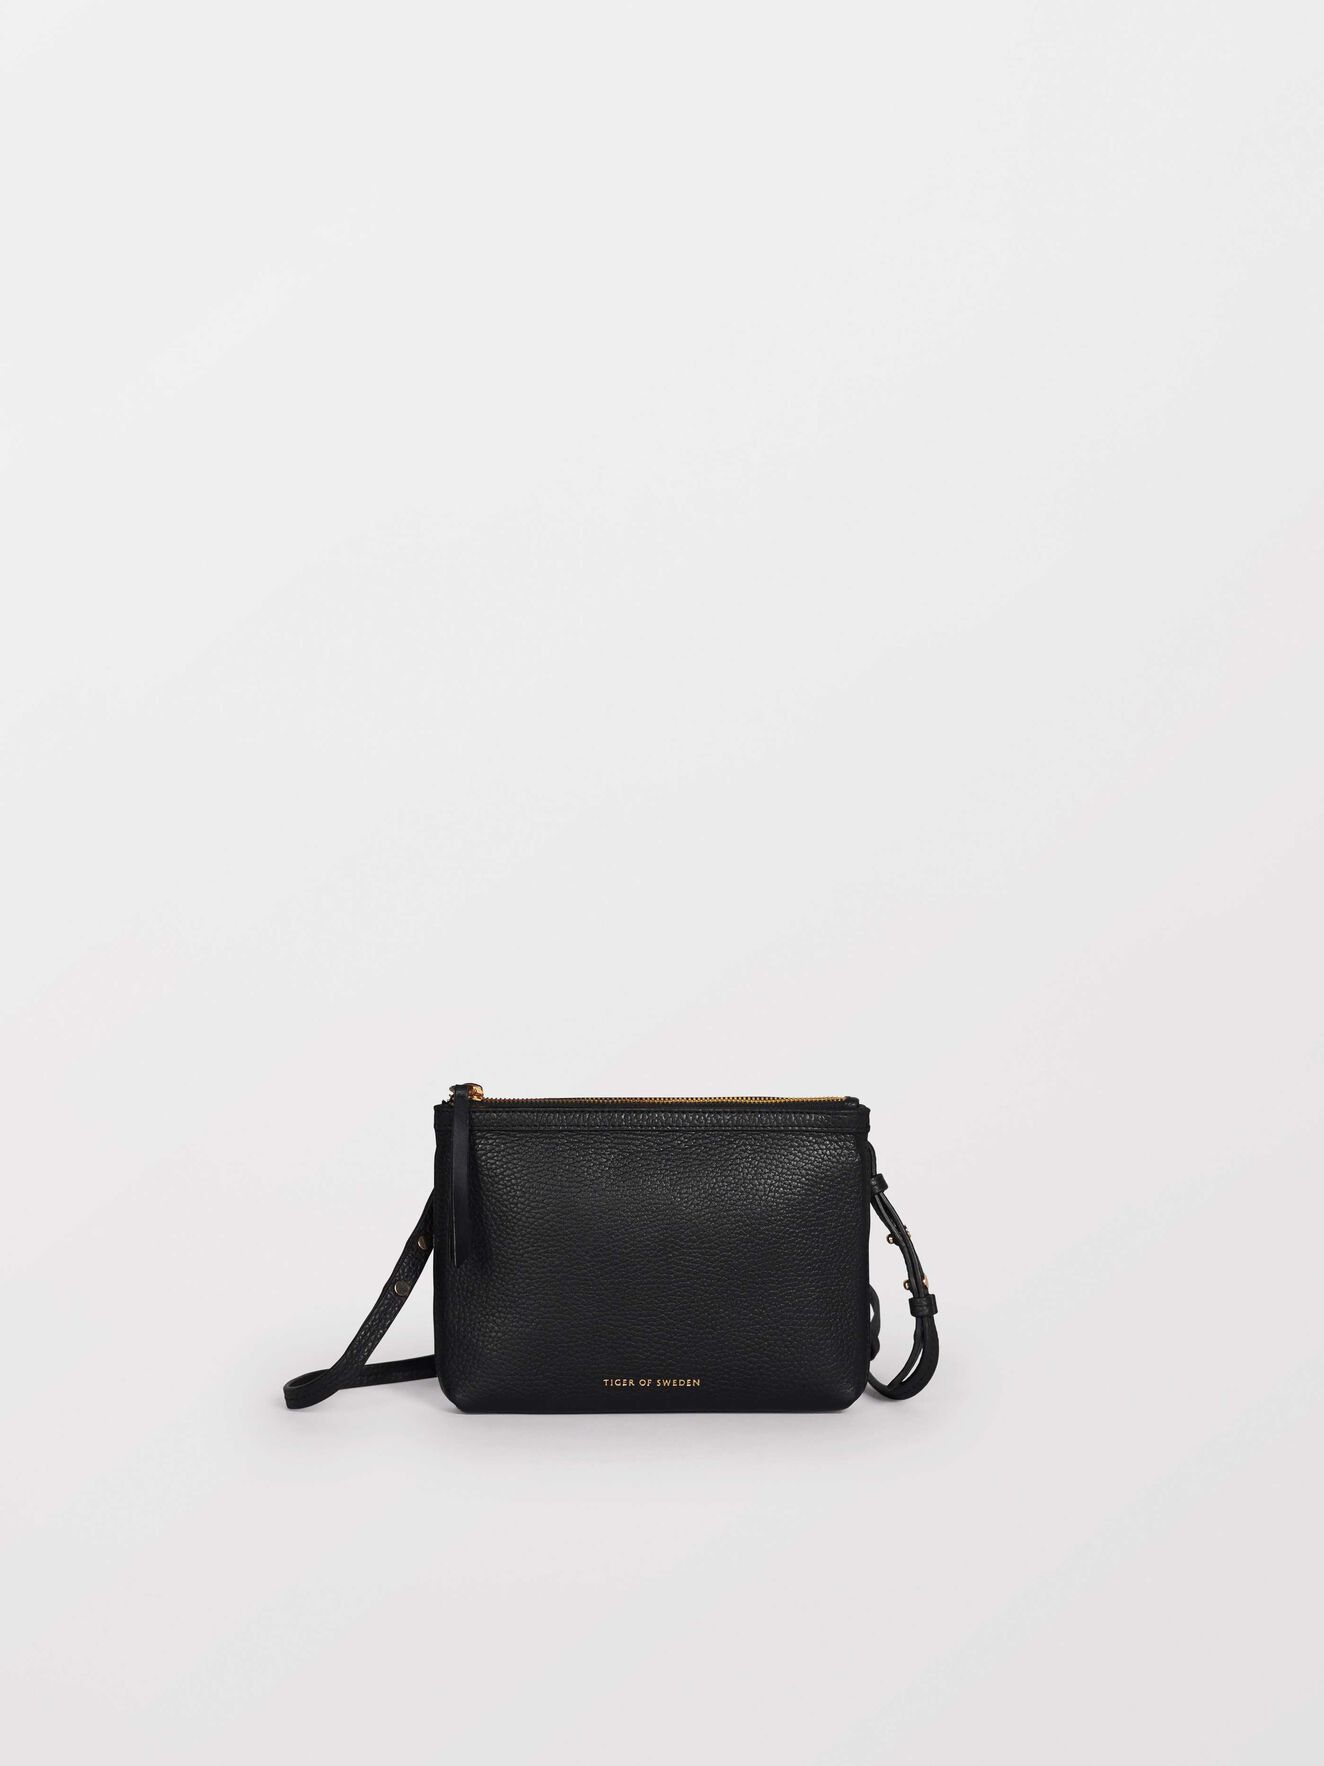 Balisei Bag in Black from Tiger of Sweden